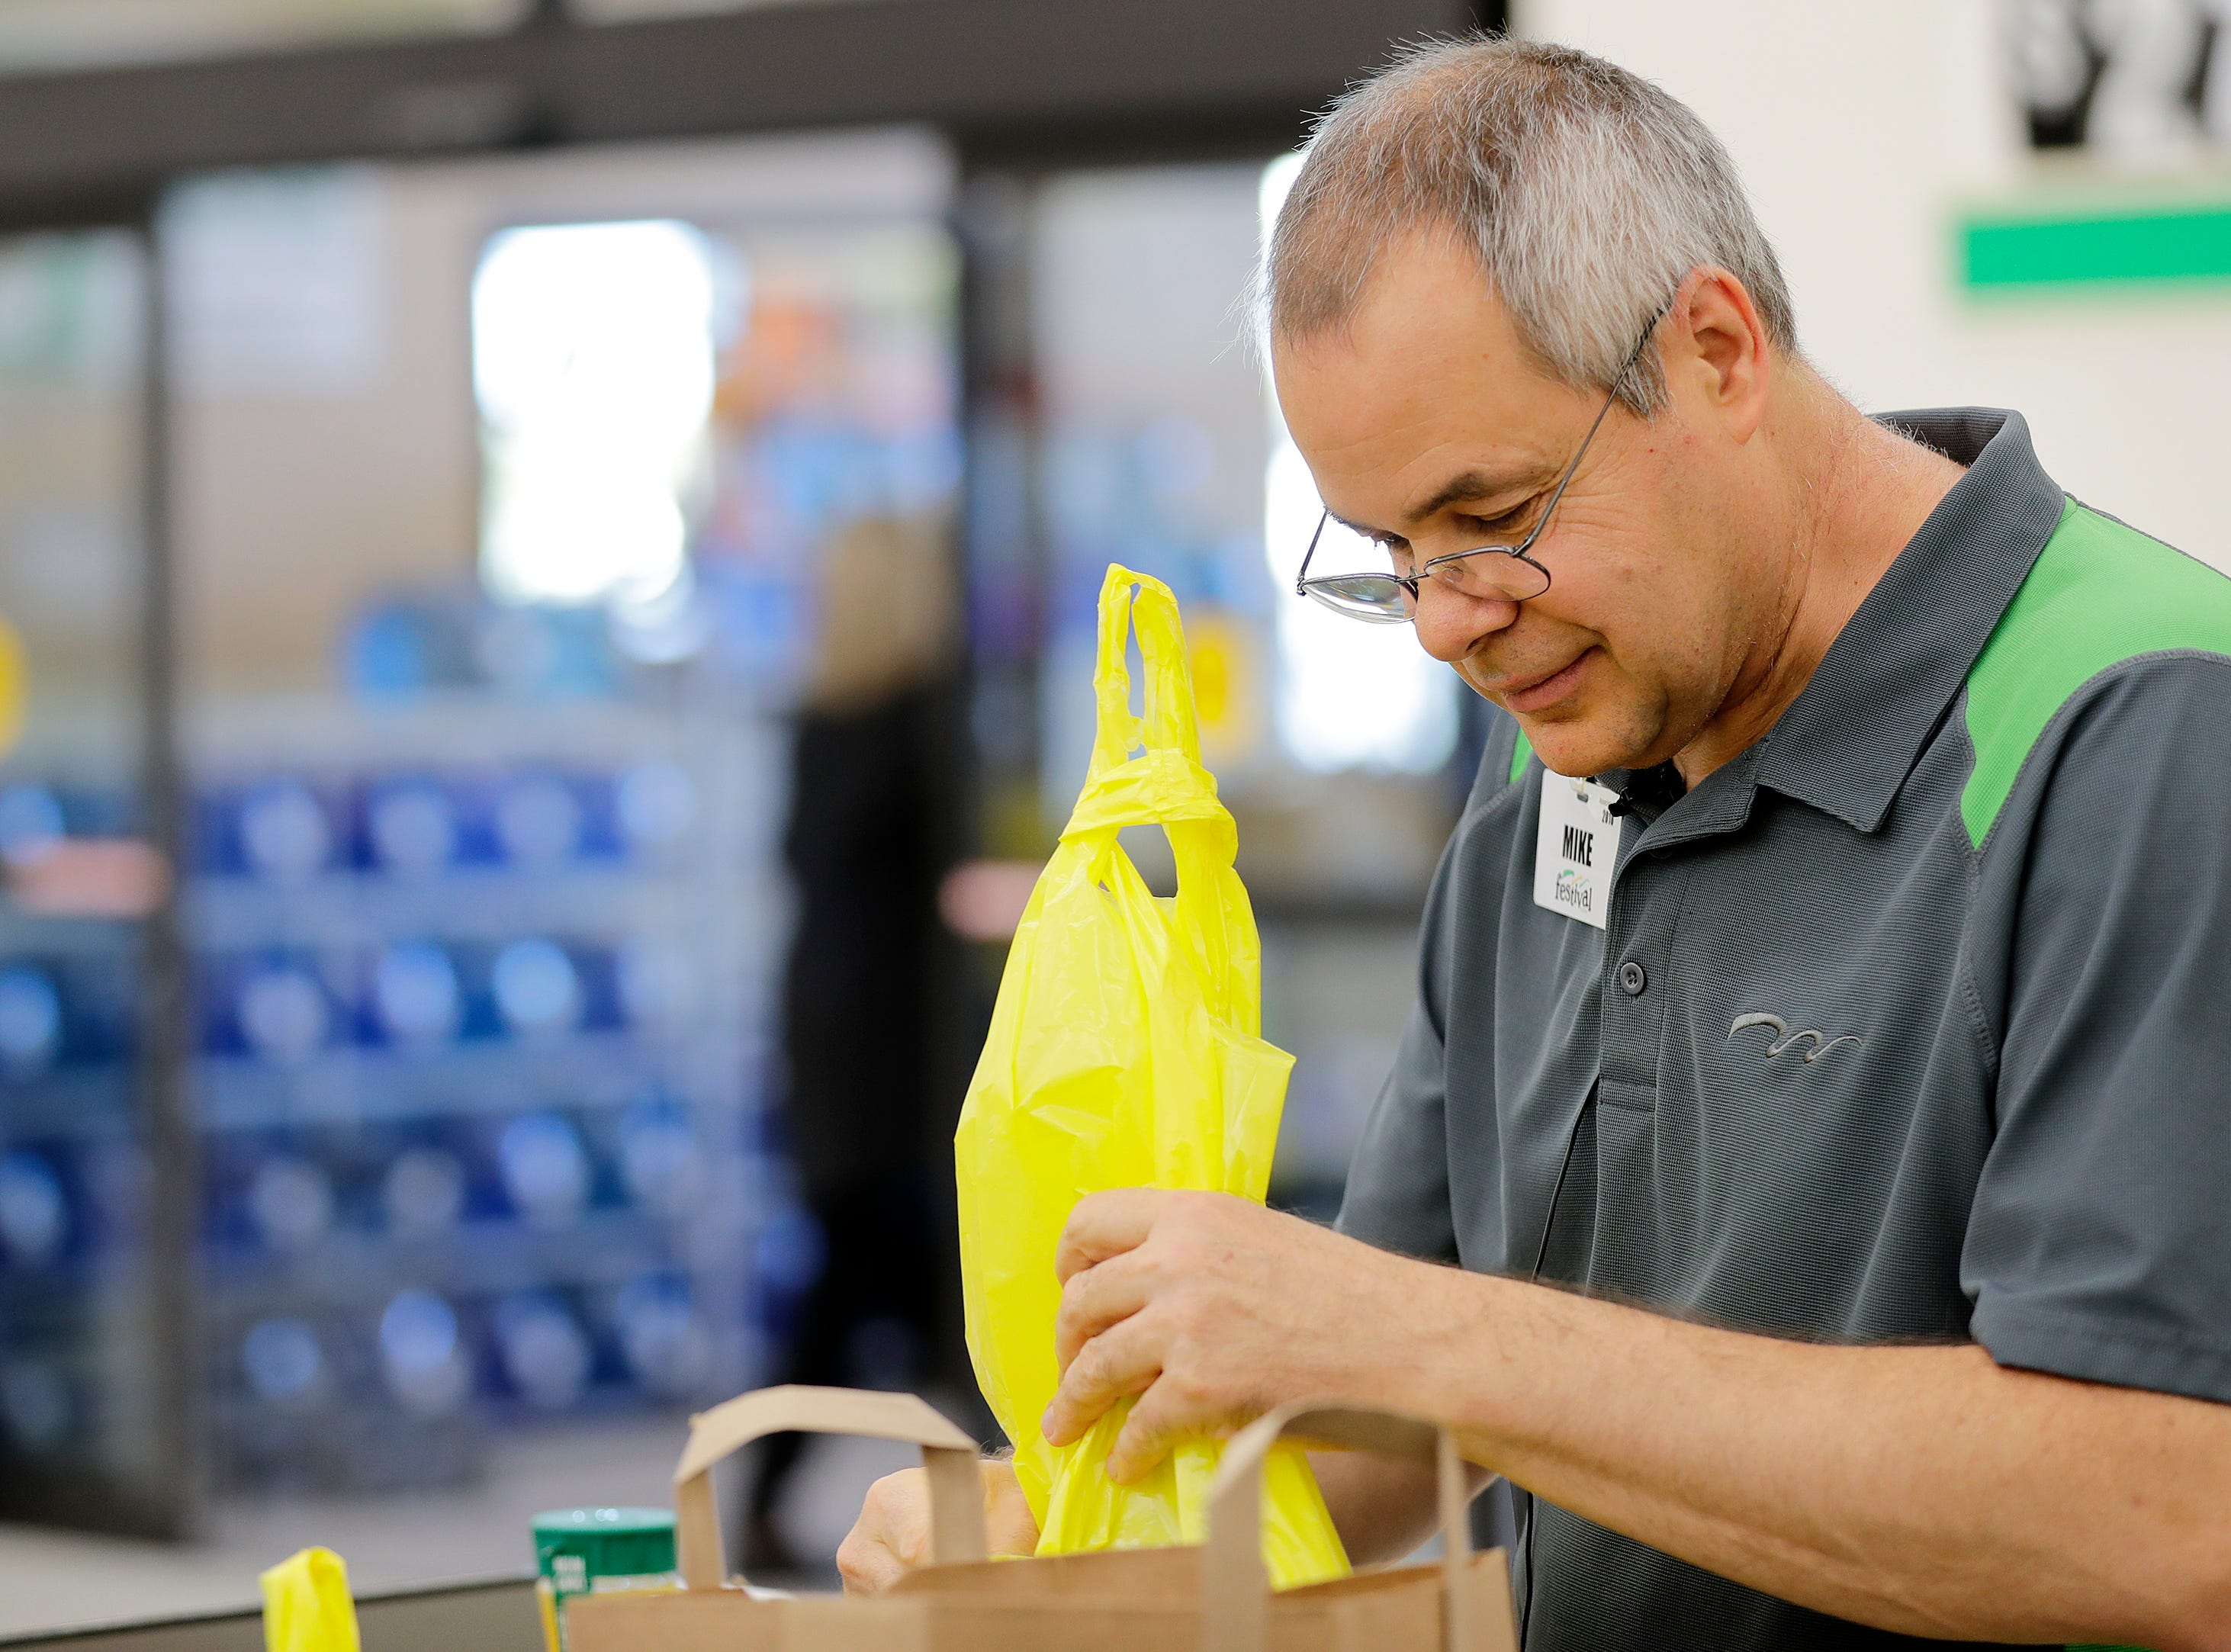 Hiring of workers with disabilities attracts attention in tight labor market